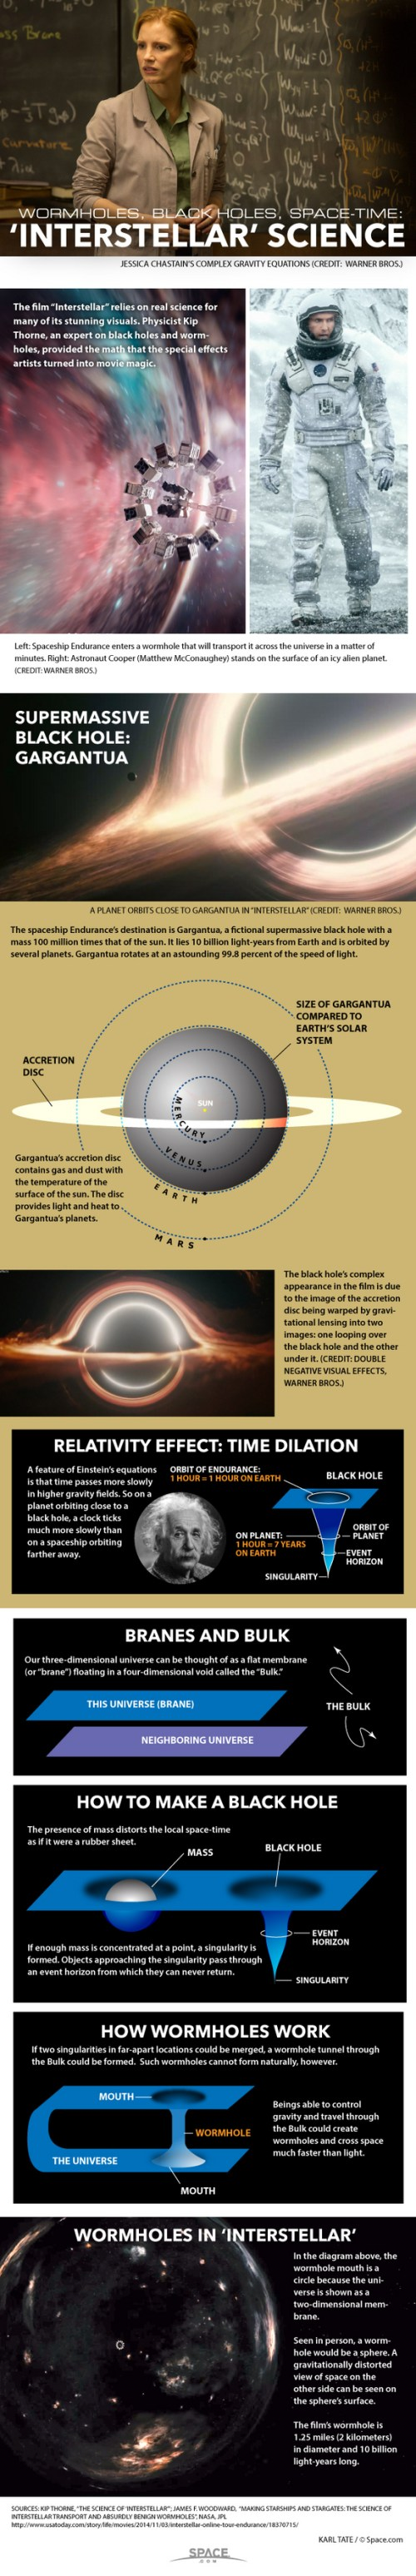 Interstellar Science Infographic